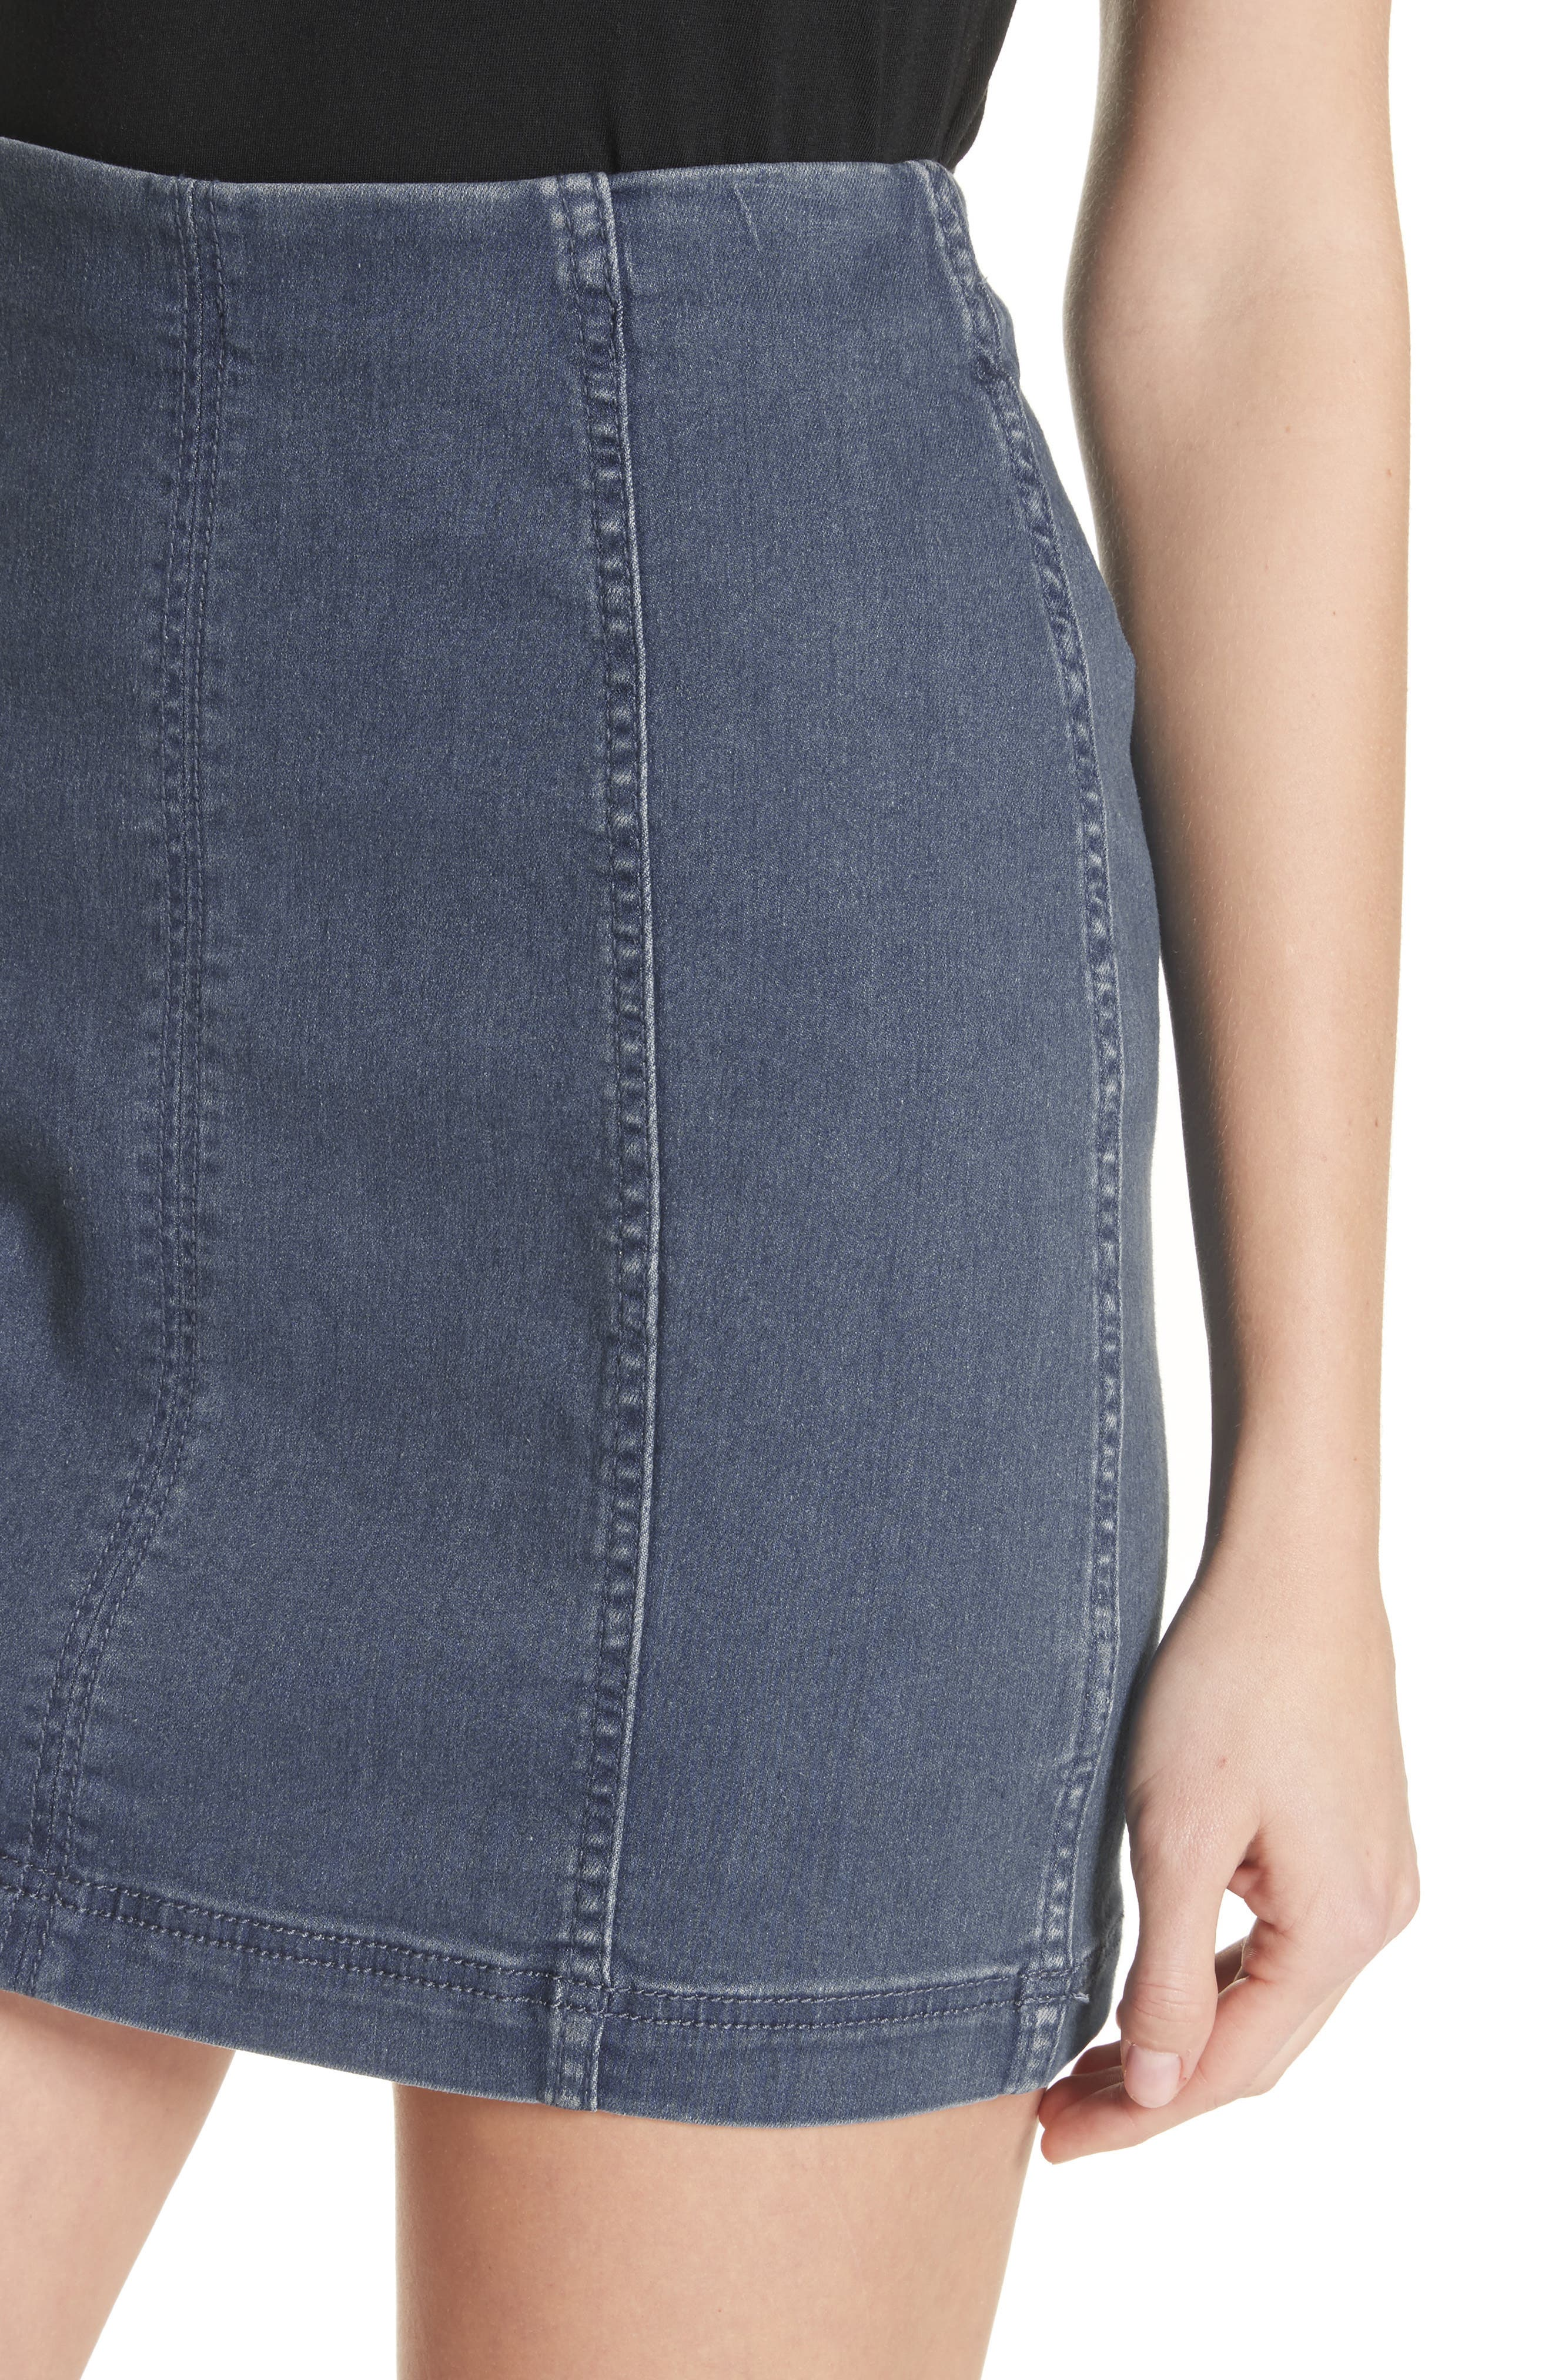 FREE PEOPLE, We the Free by Free People Modern Denim Miniskirt, Alternate thumbnail 5, color, 400